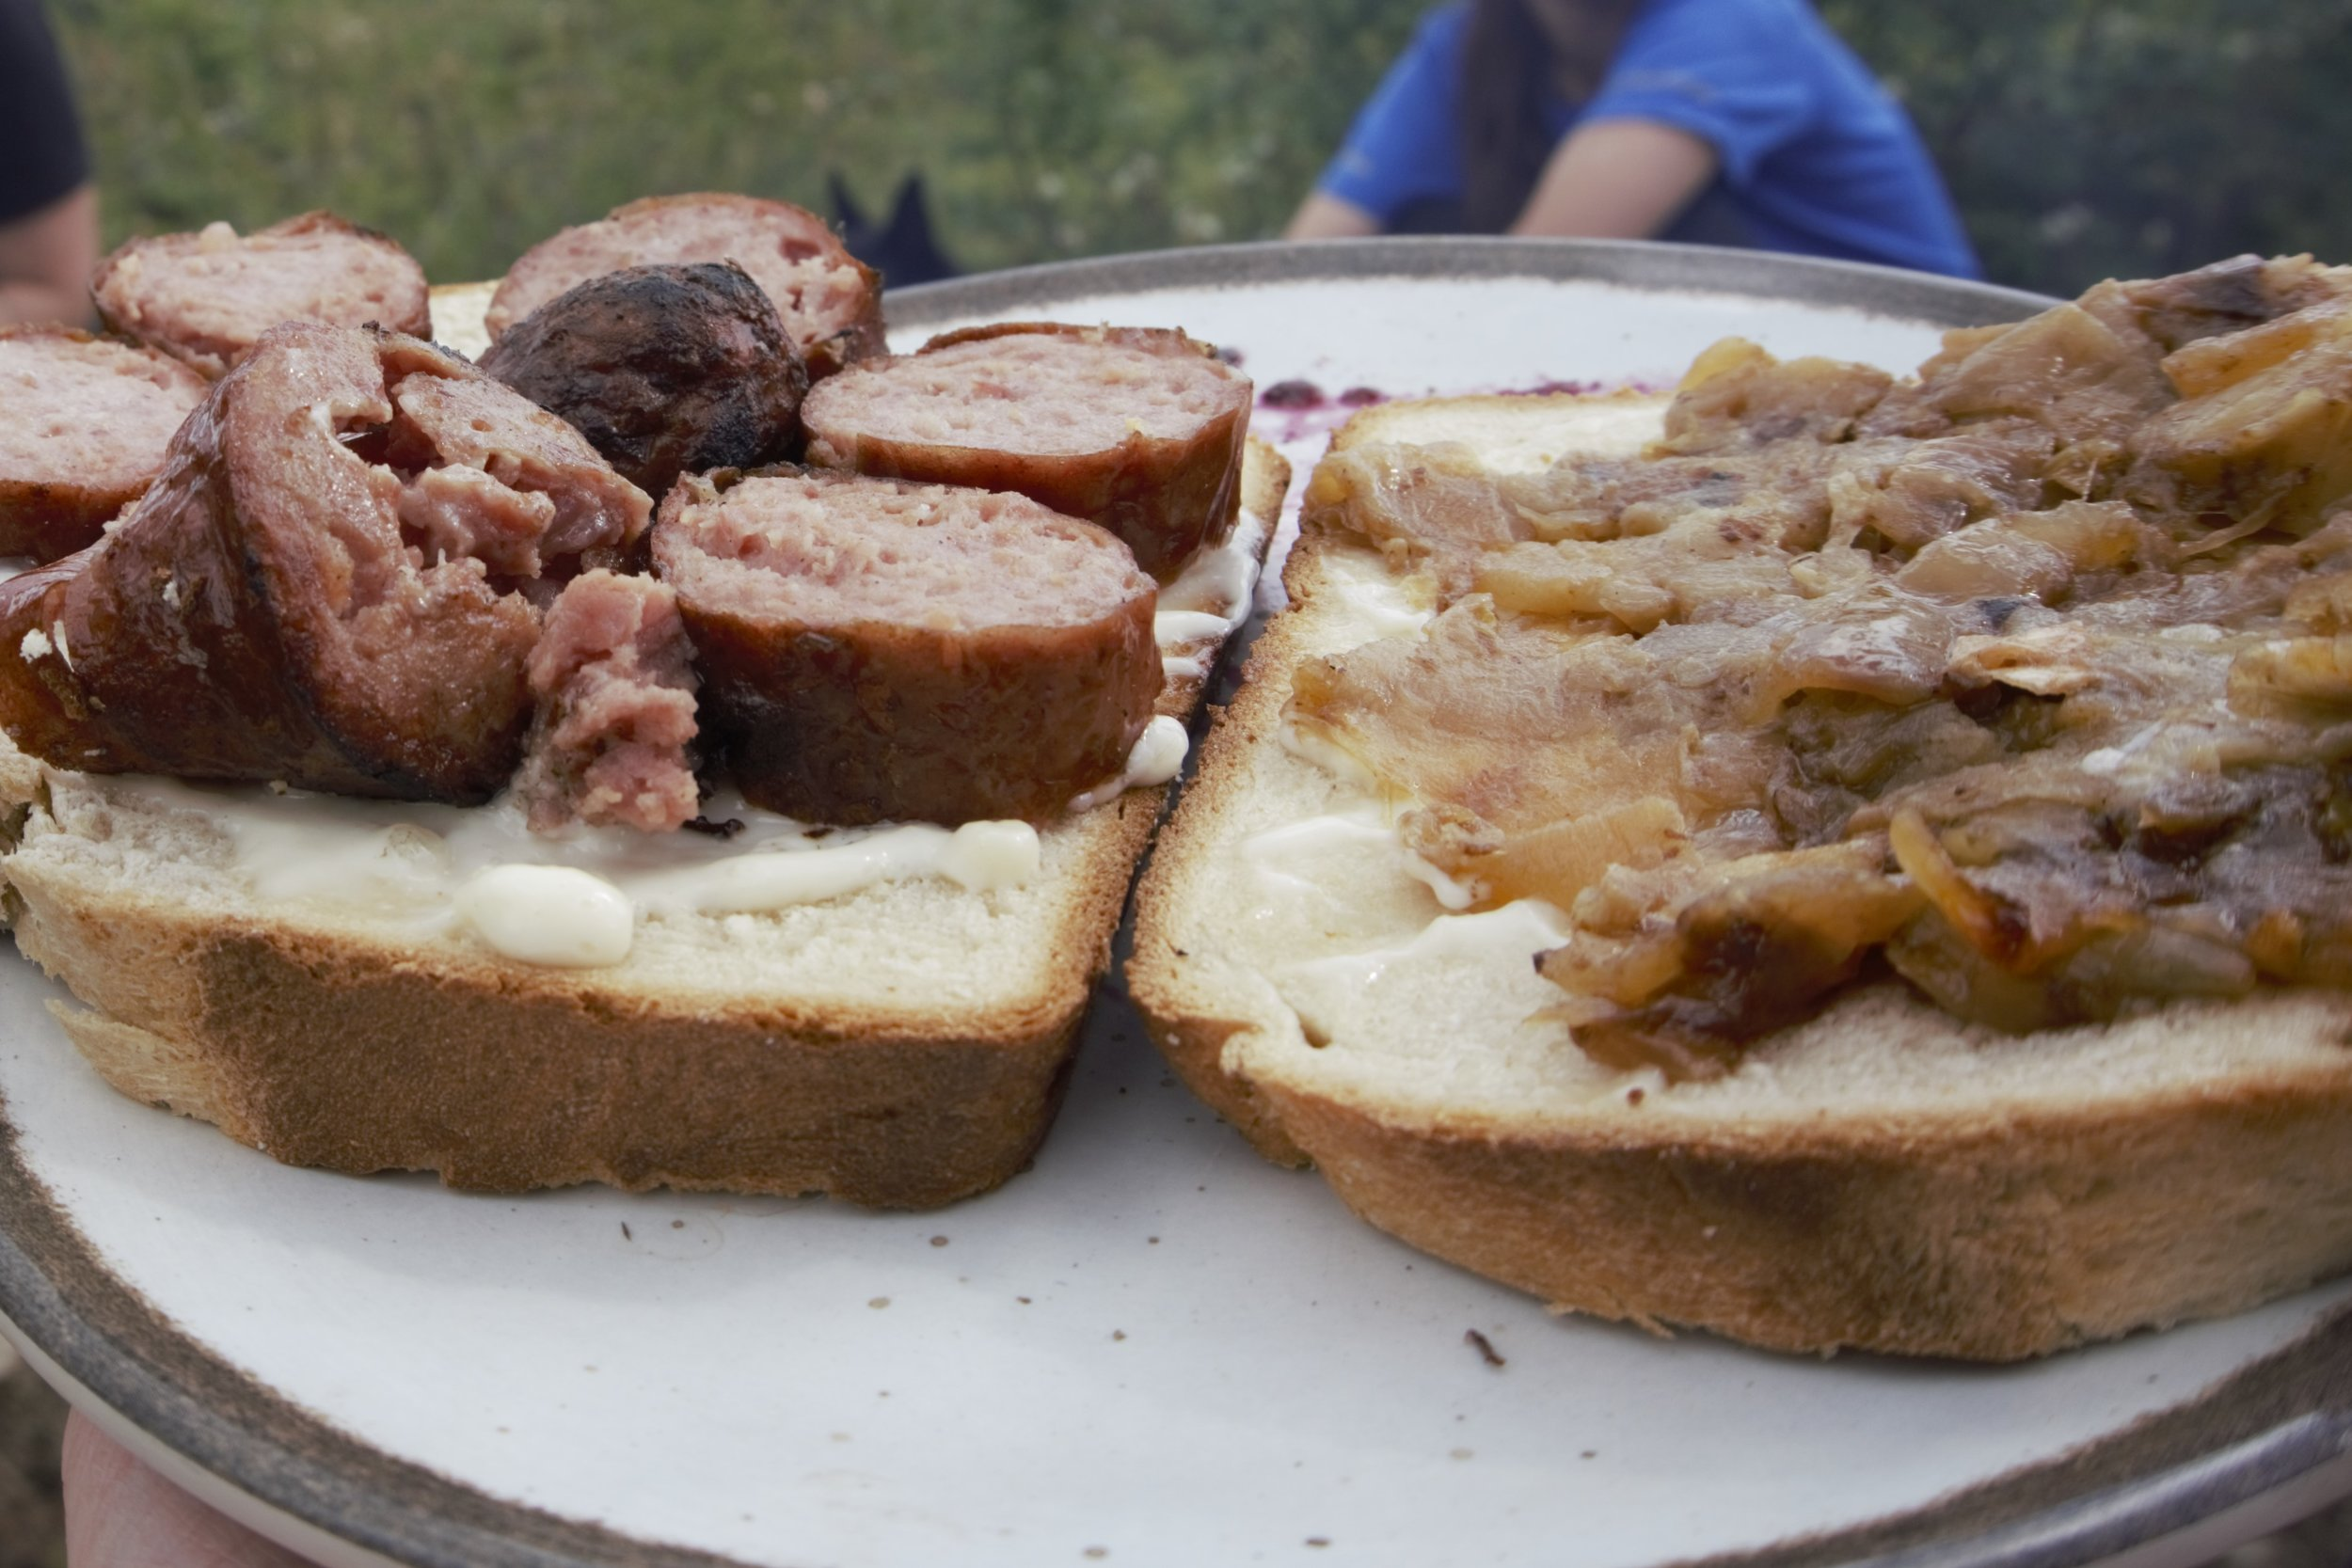 Sausage & onions on homemade bread